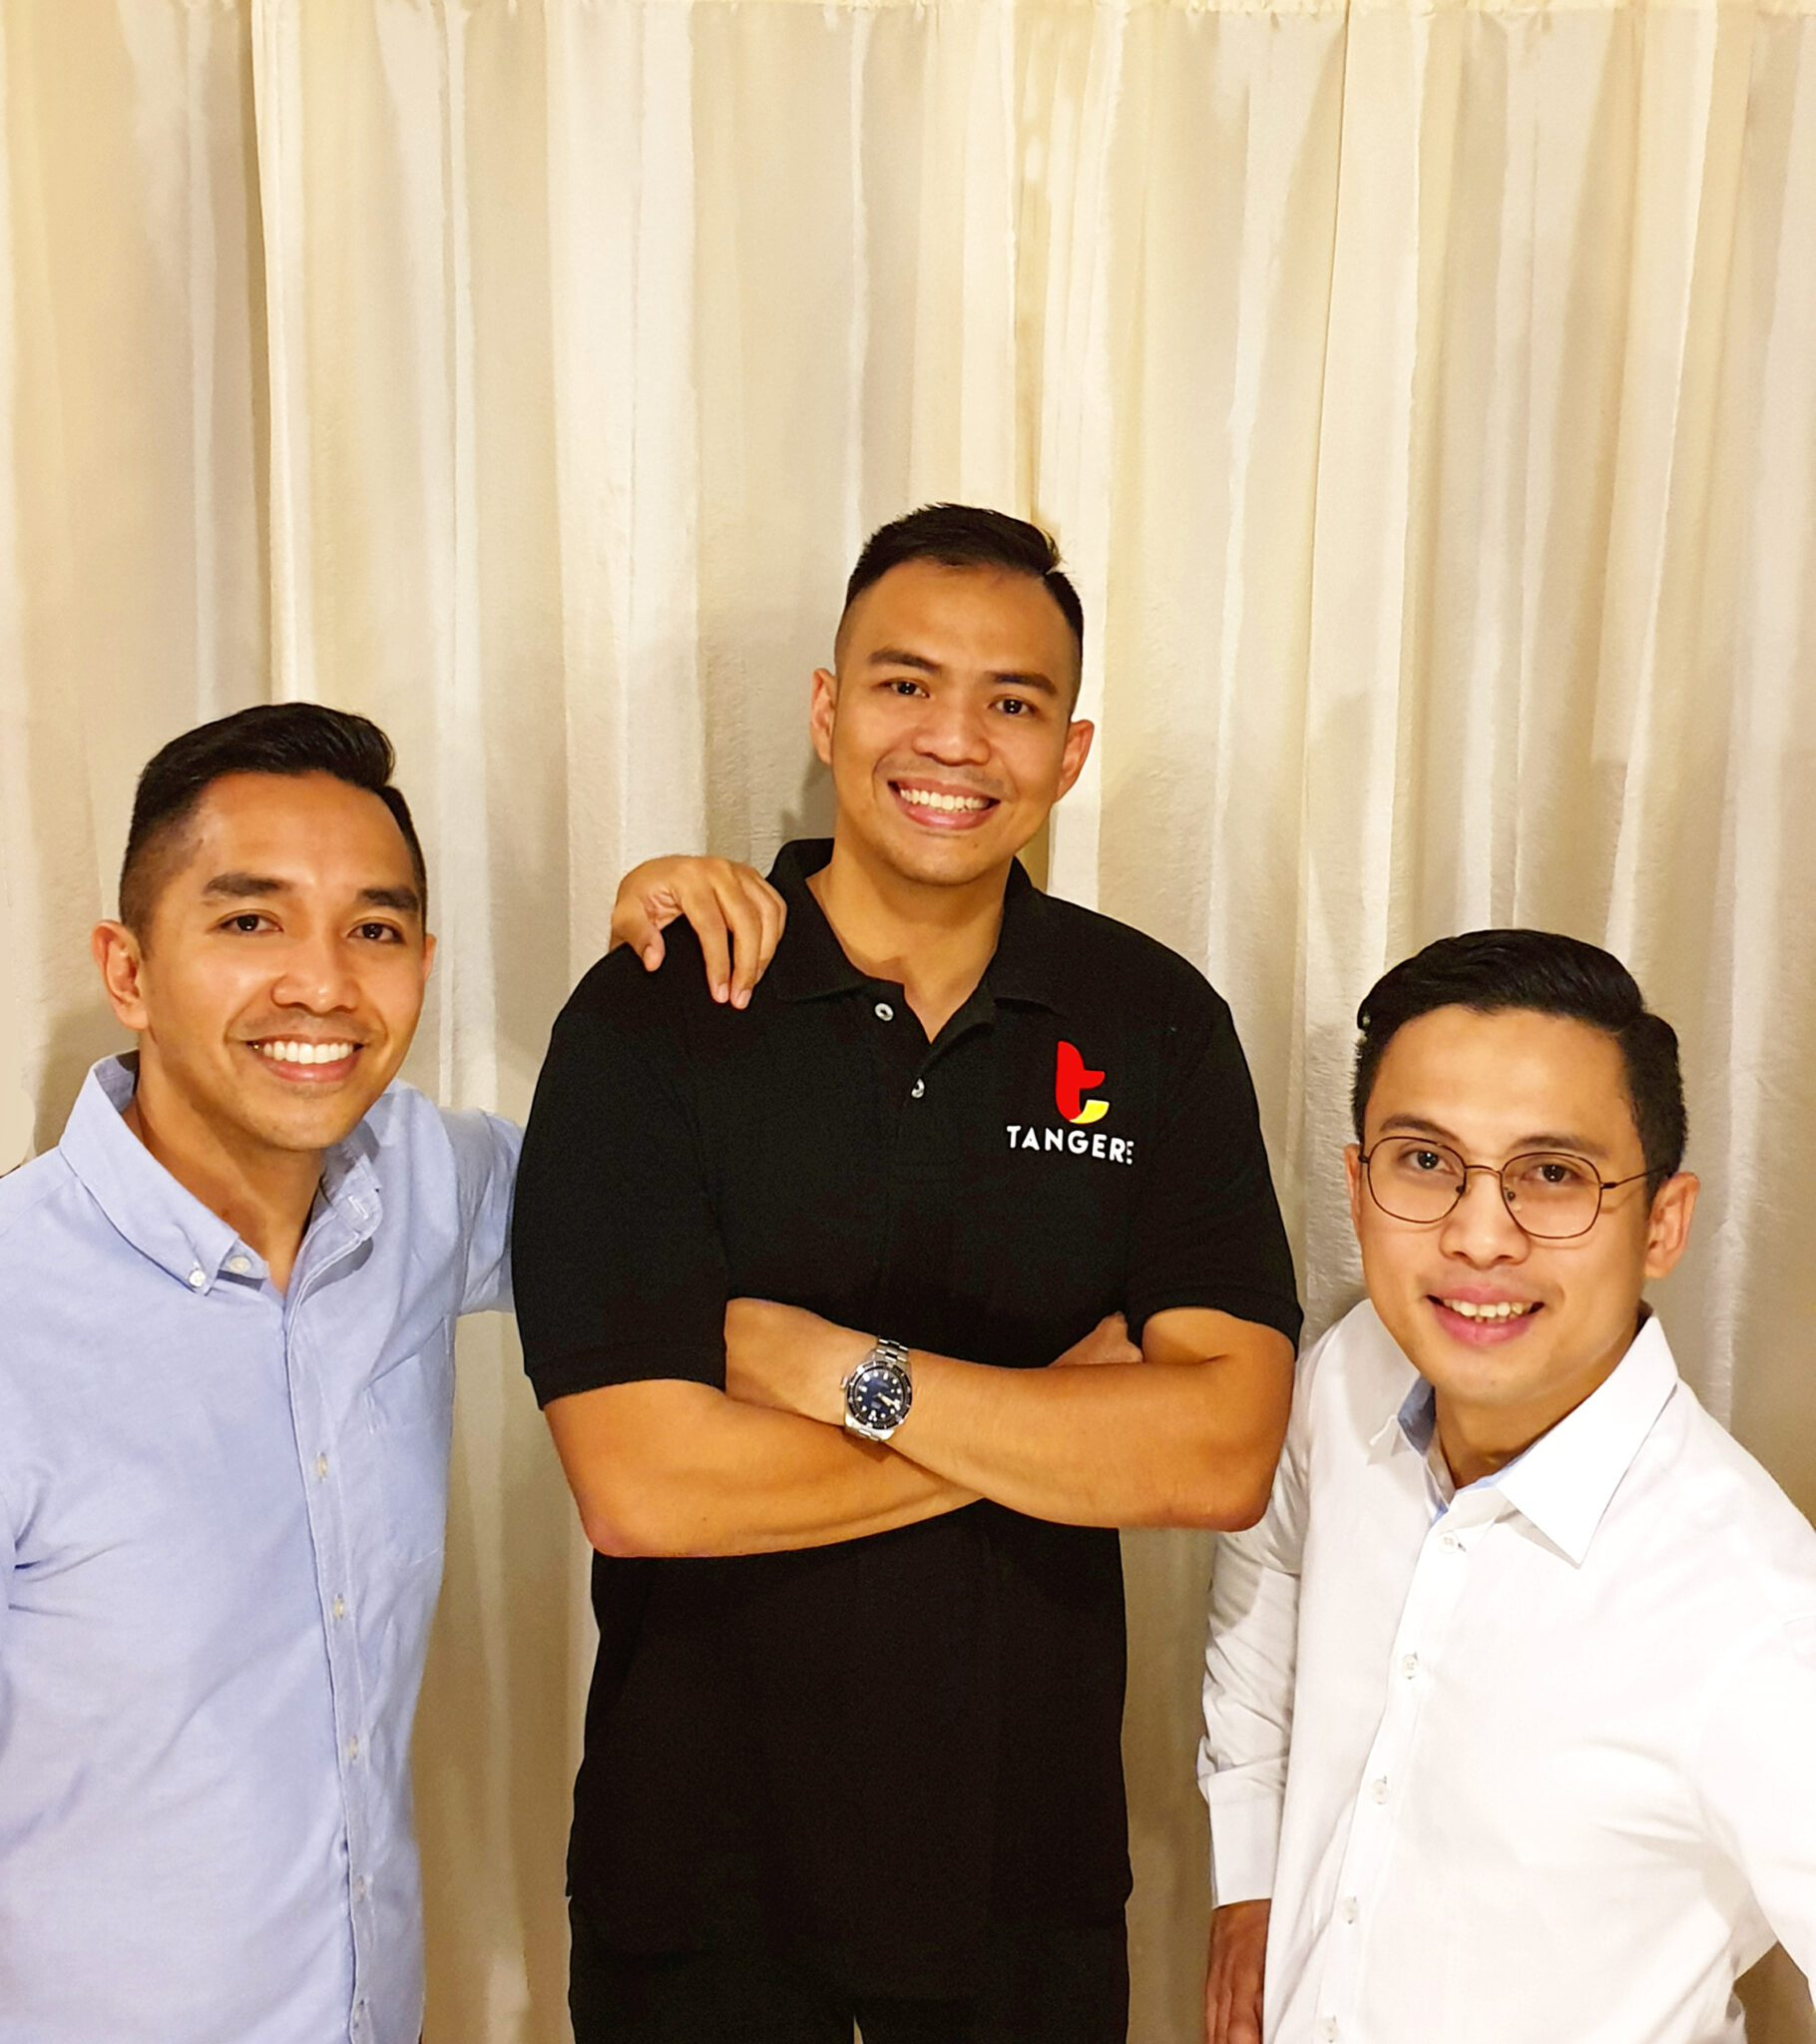 Filipino - Founded Startups: Big Data Analytics & Travel